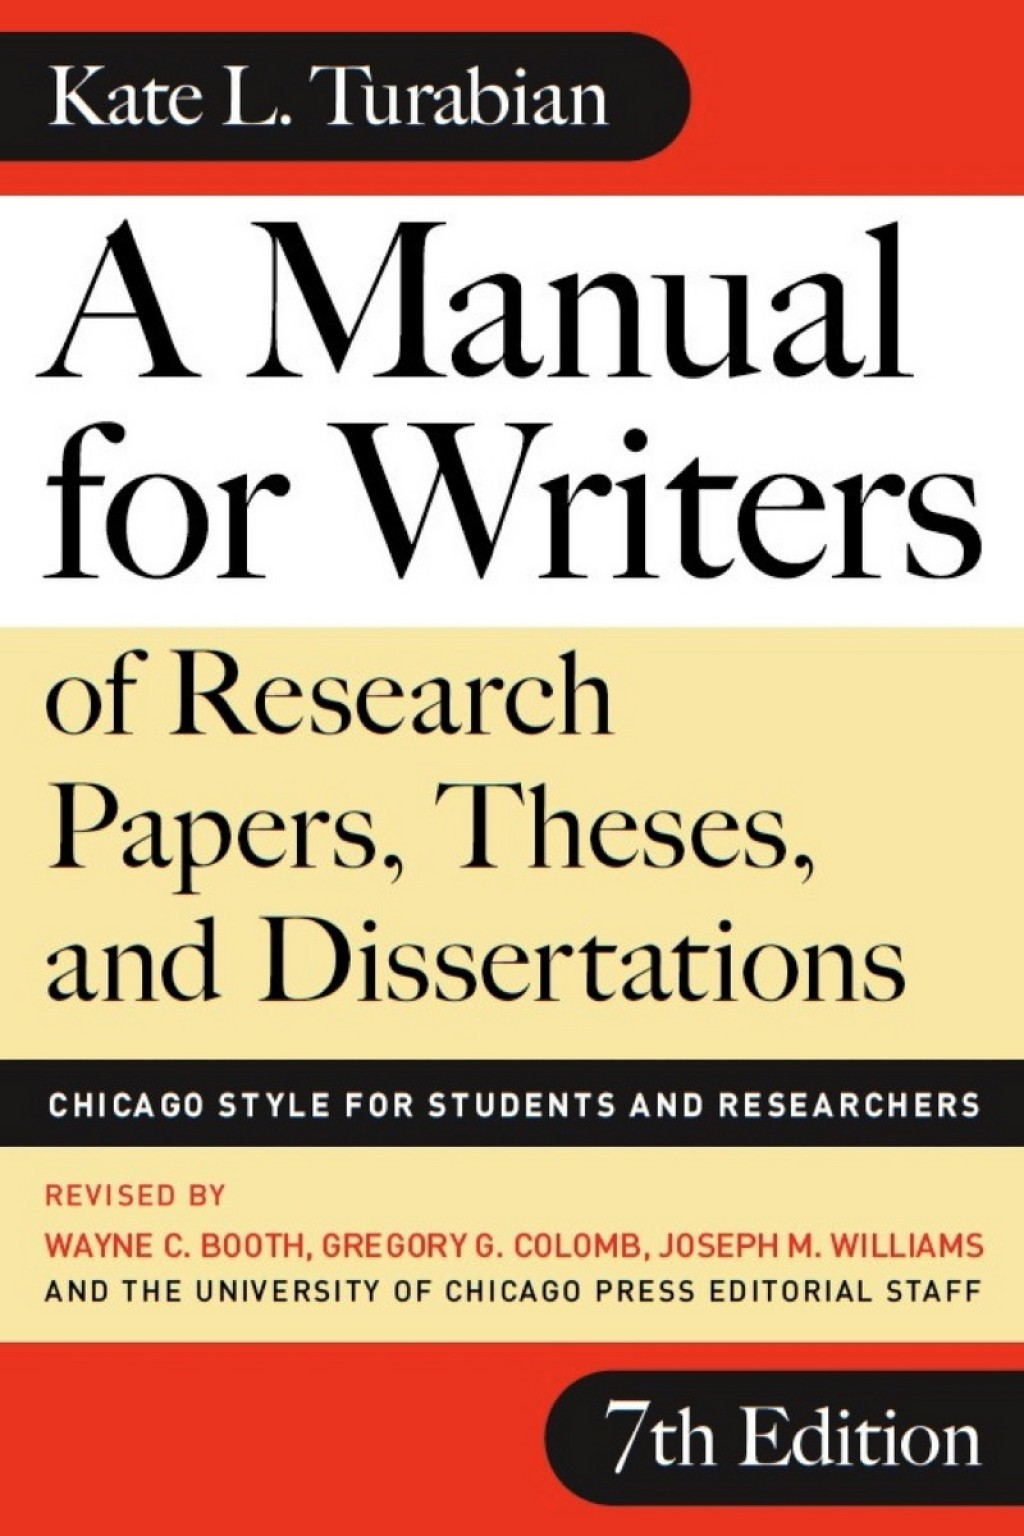 008 Manual For Writers Of Researchs Theses And Dissertations Frontcover Magnificent Research Papers A Amazon 9th Edition Pdf 8th 13 Large